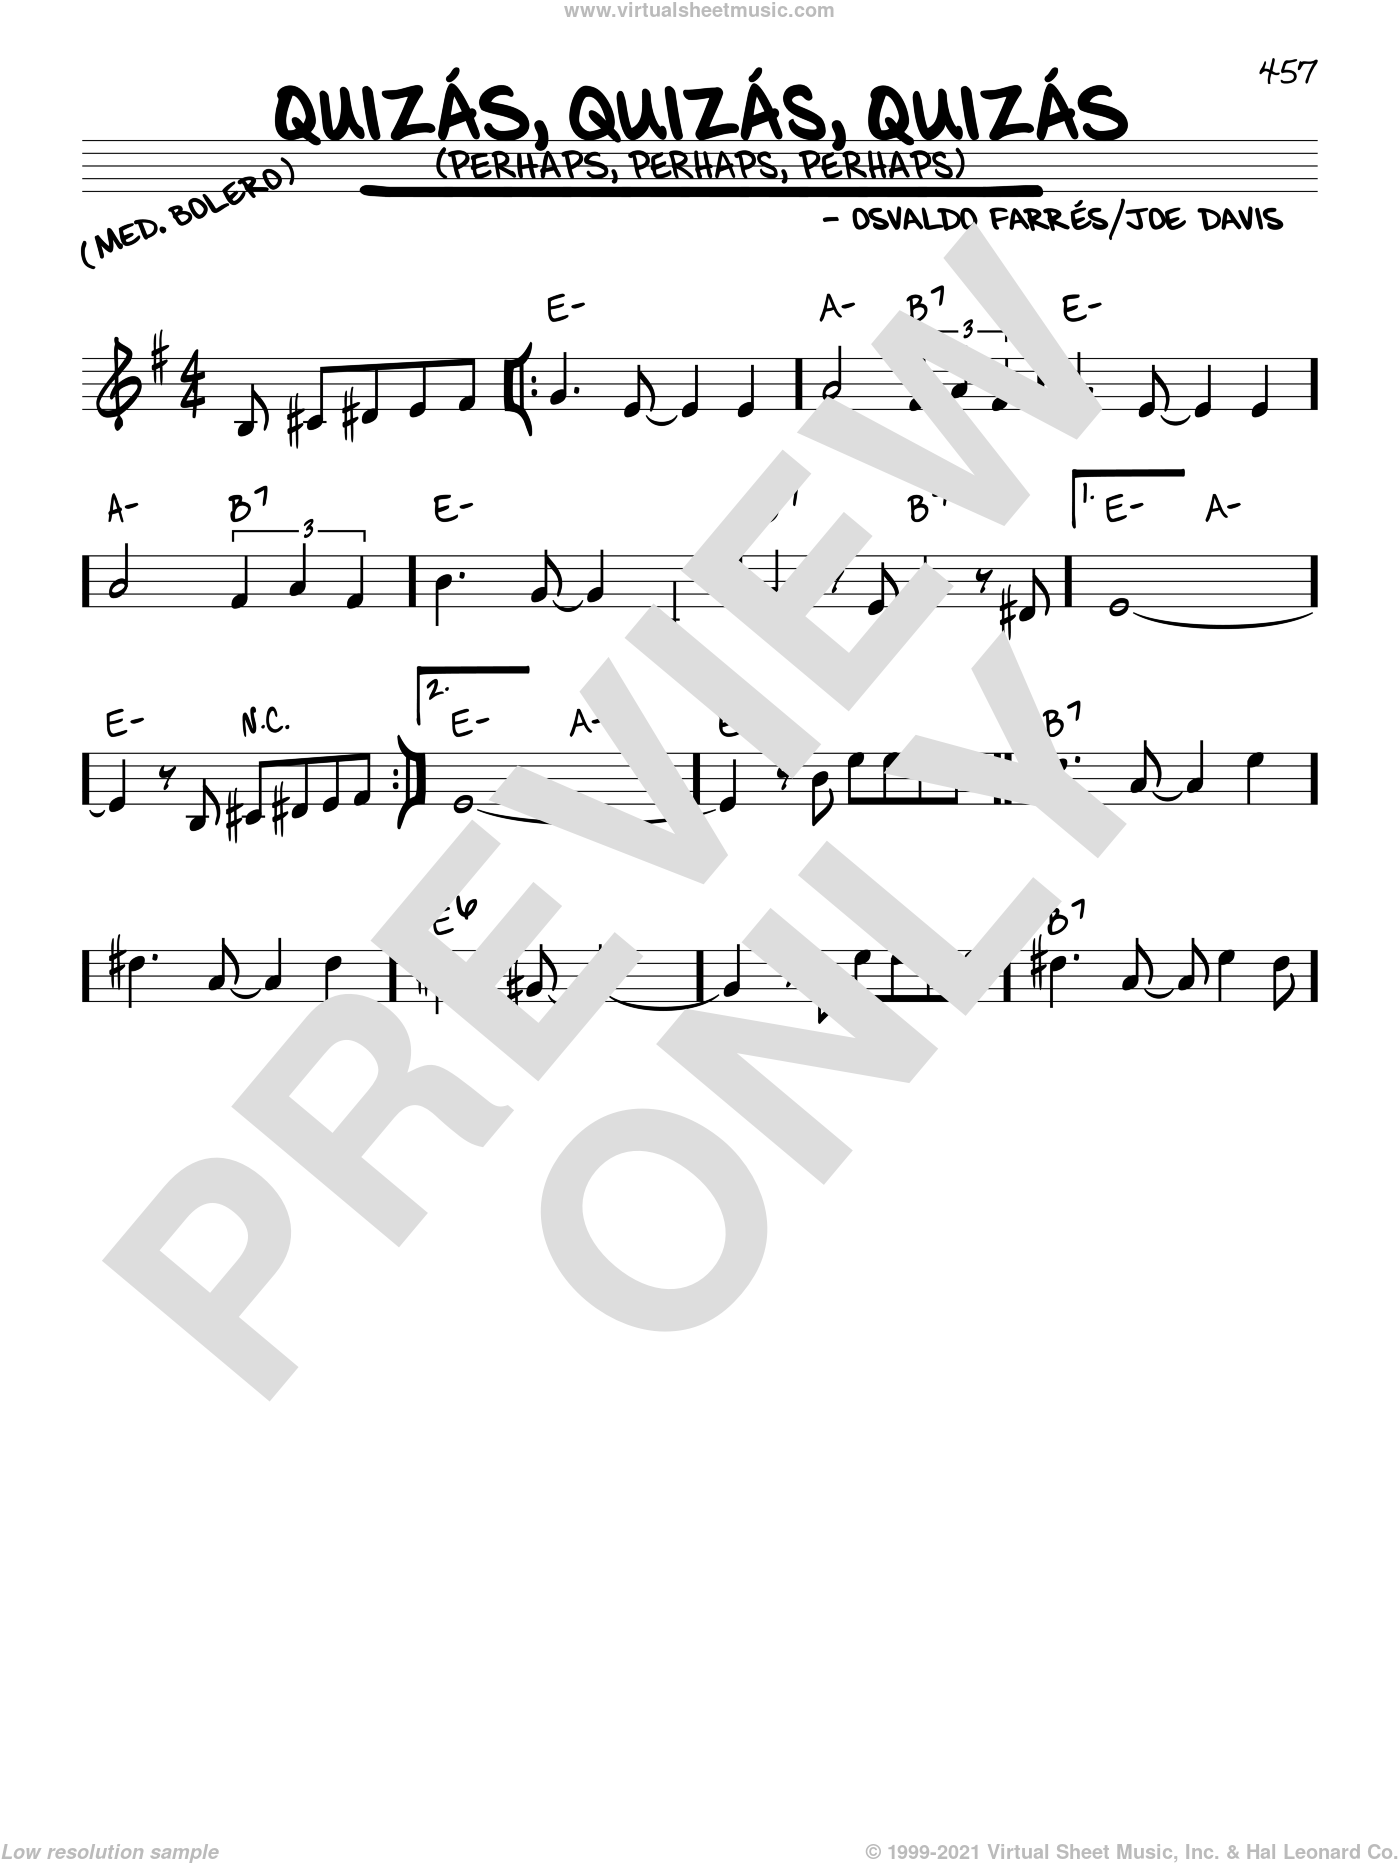 Quizas, Quizas, Quizas (Perhaps, Perhaps, Perhaps) sheet music for voice and other instruments (in C) by Osvaldo Farres and Joe Davis, intermediate. Score Image Preview.